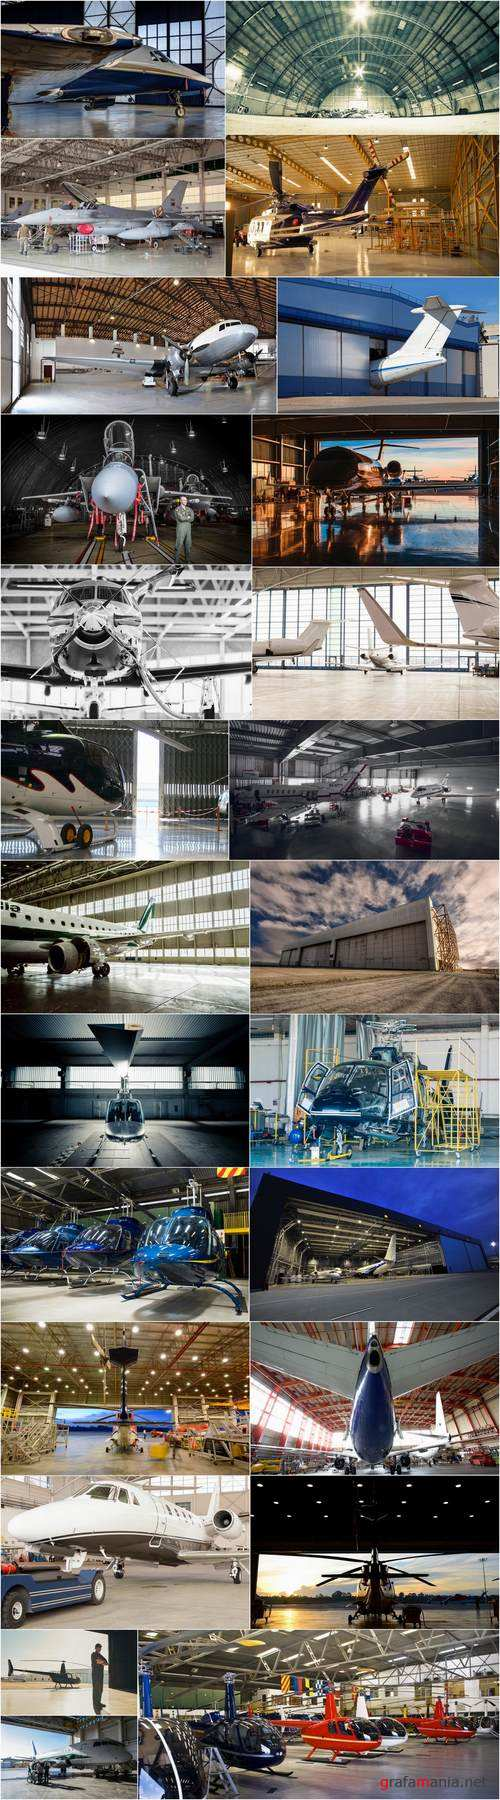 Hangar space garage aircraft helicopter 25 HQ Jpeg